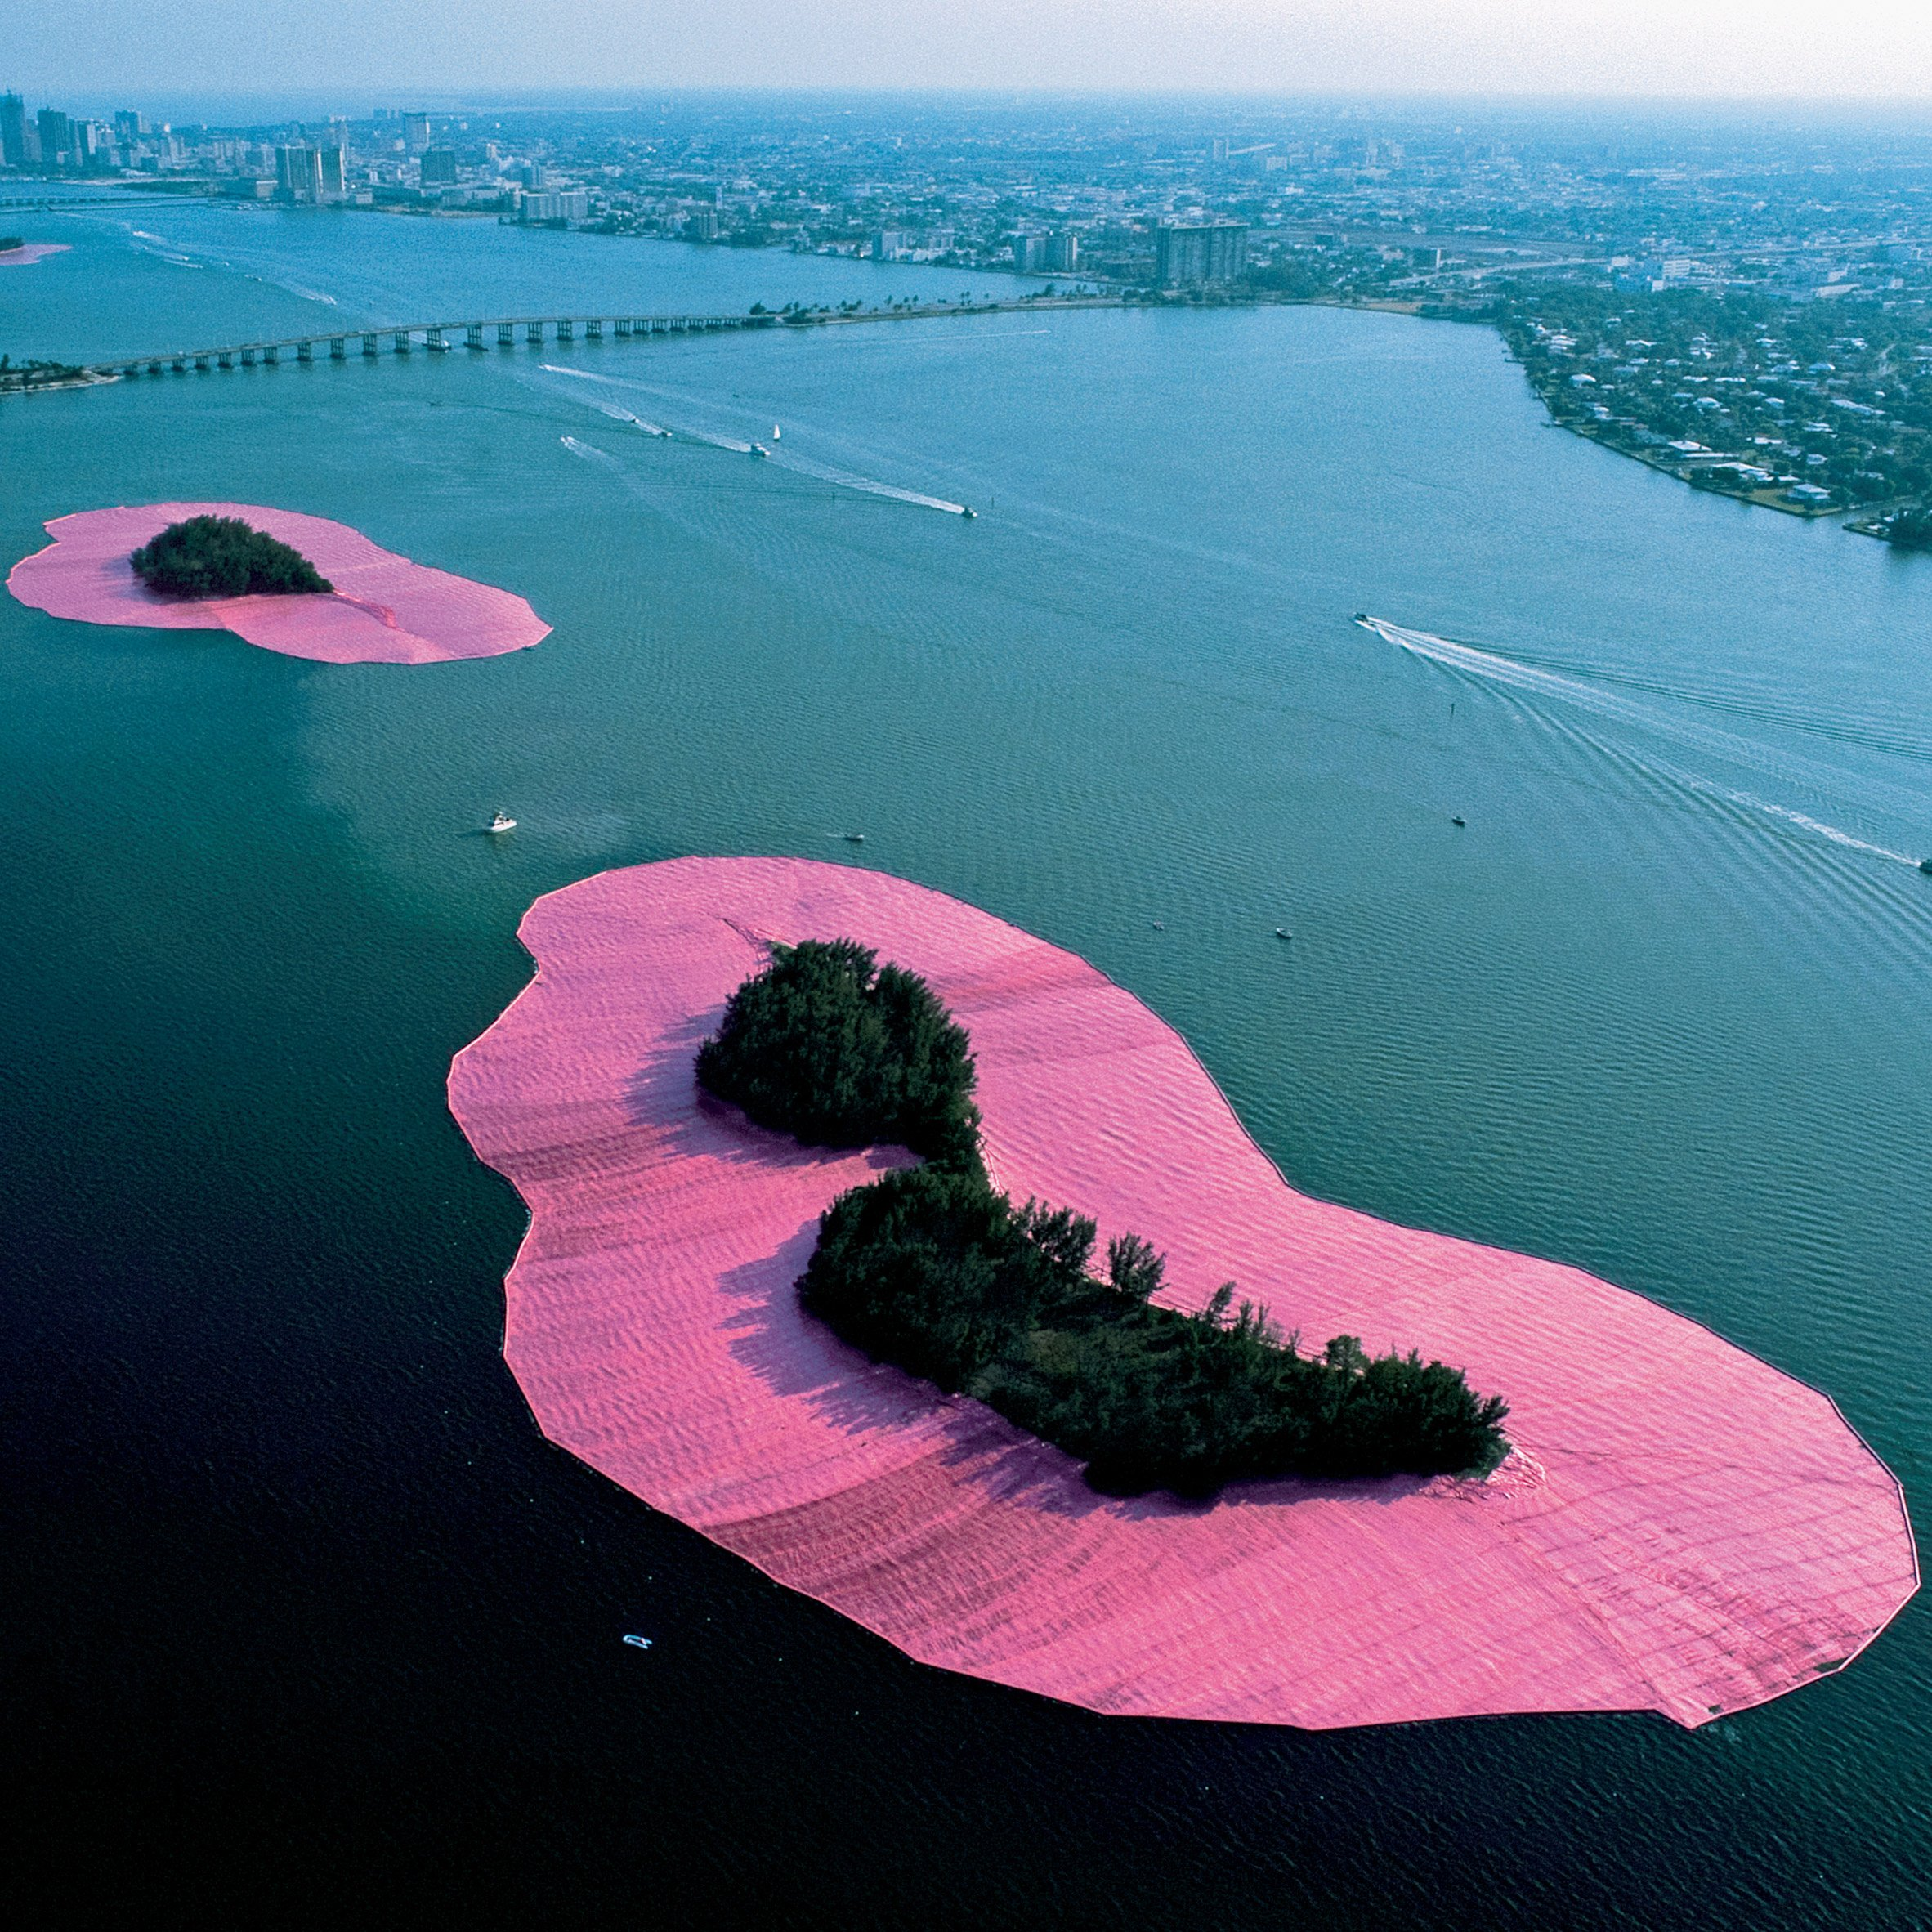 Eight key projects by Christo and Jeanne Claude